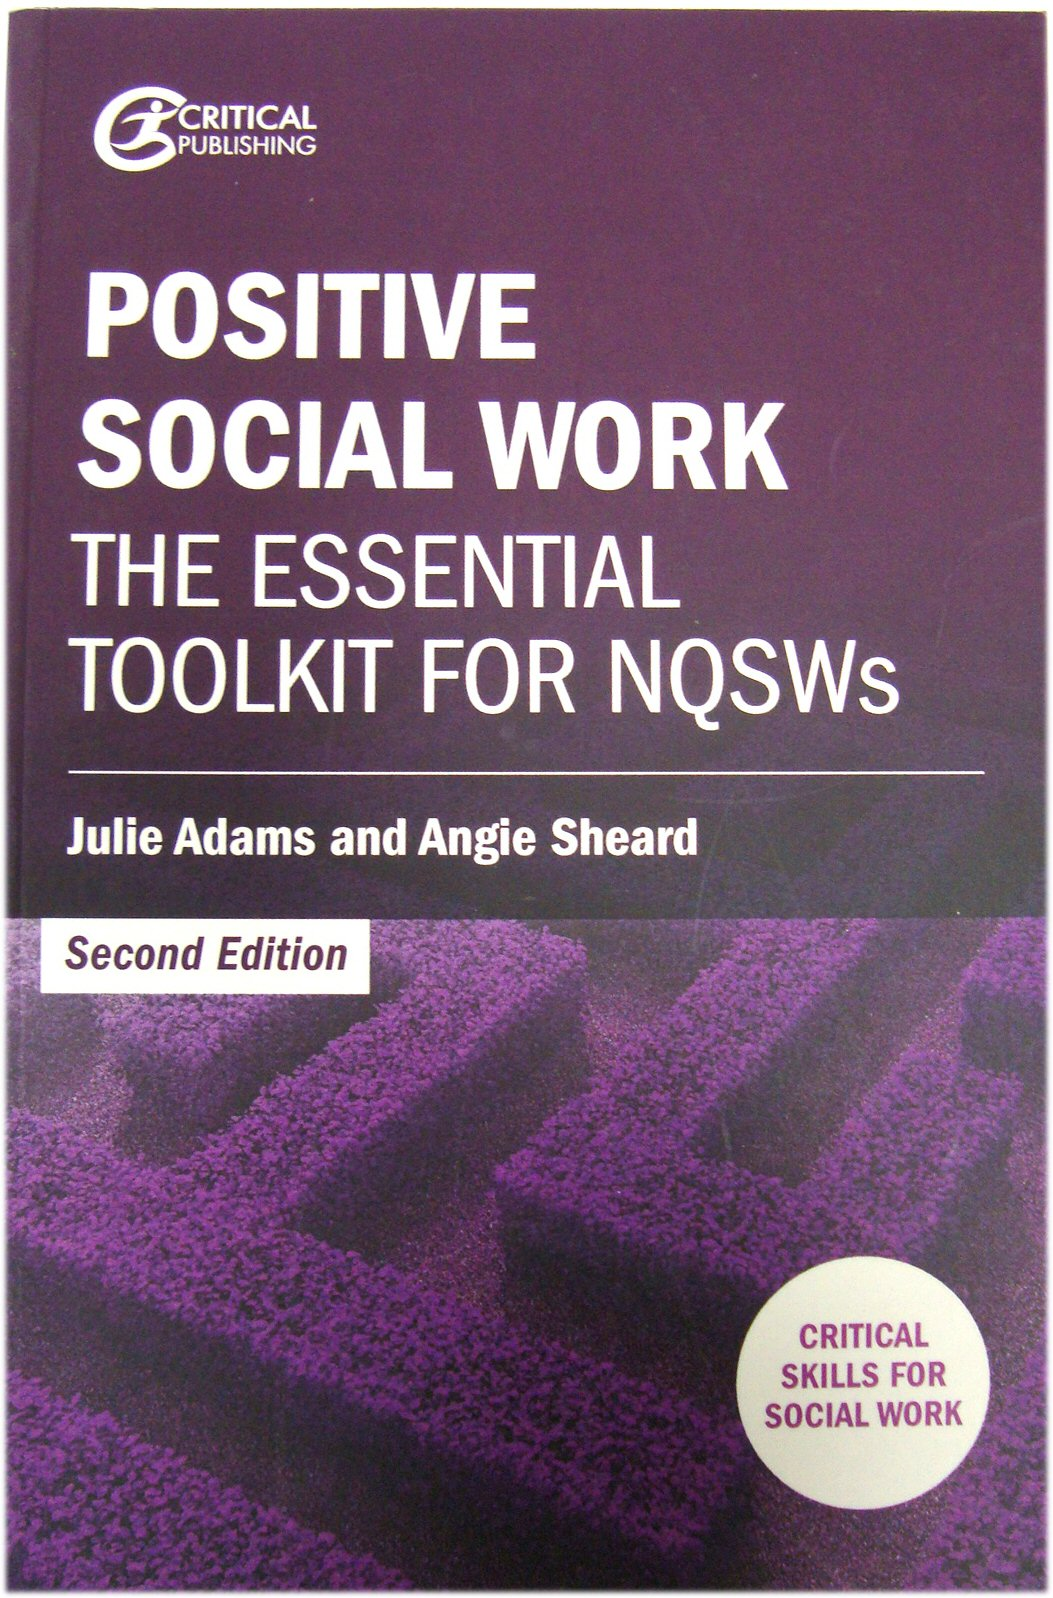 Image for Positive Social Work: The Essential Toolkit for NQSWs